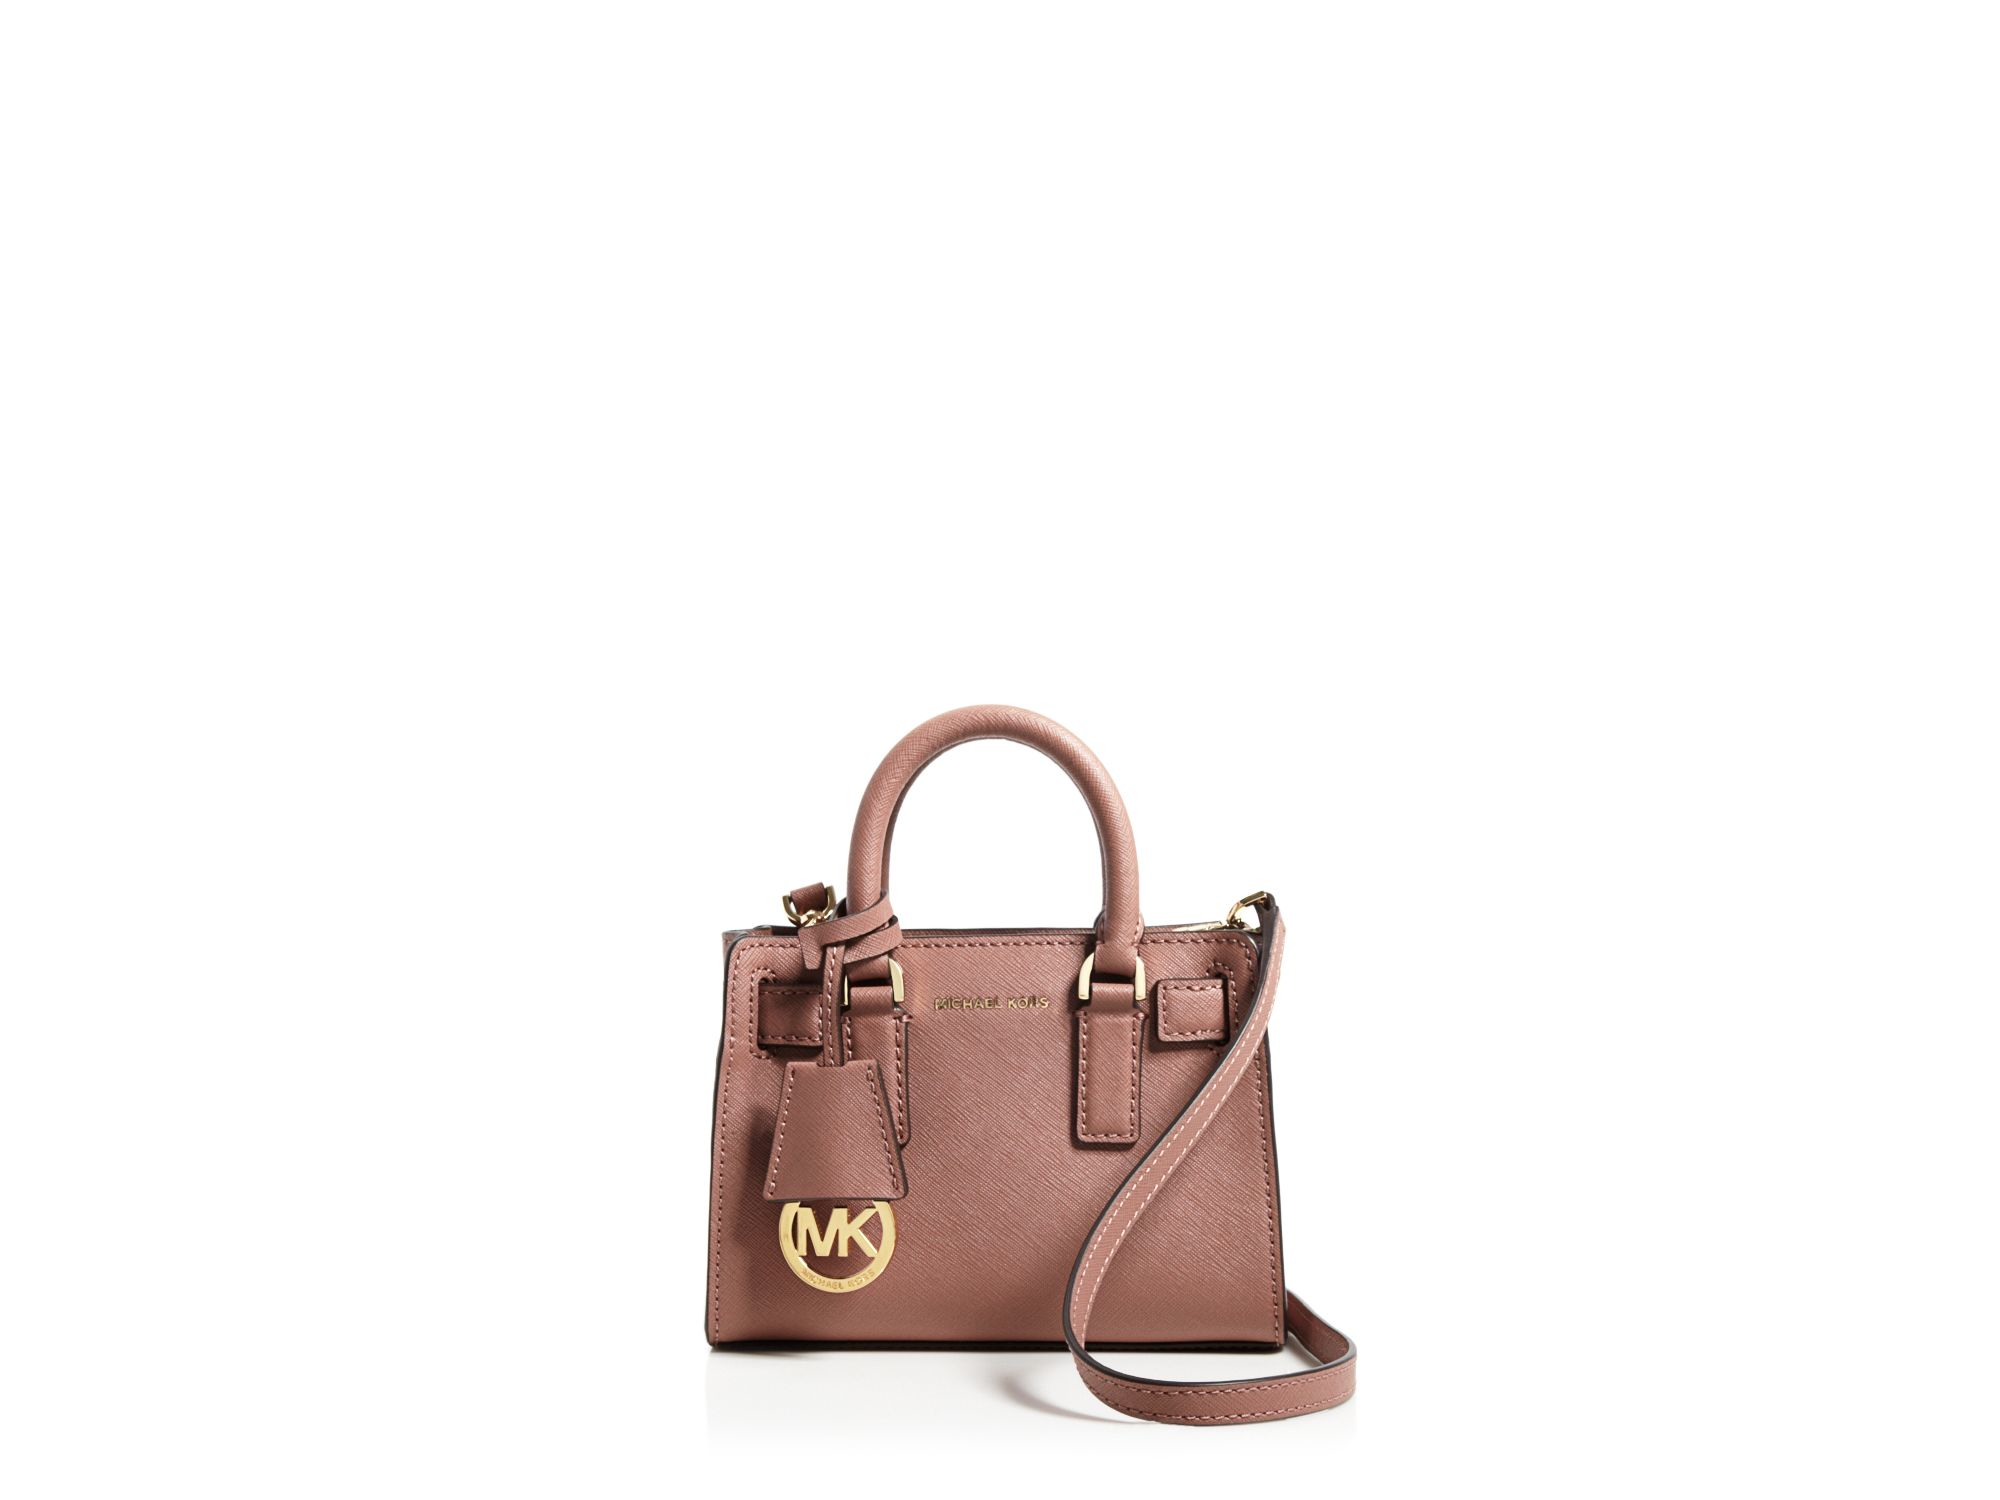 Michael michael kors Dillon Mini Leather Cross-Body Bag in Pink | Lyst